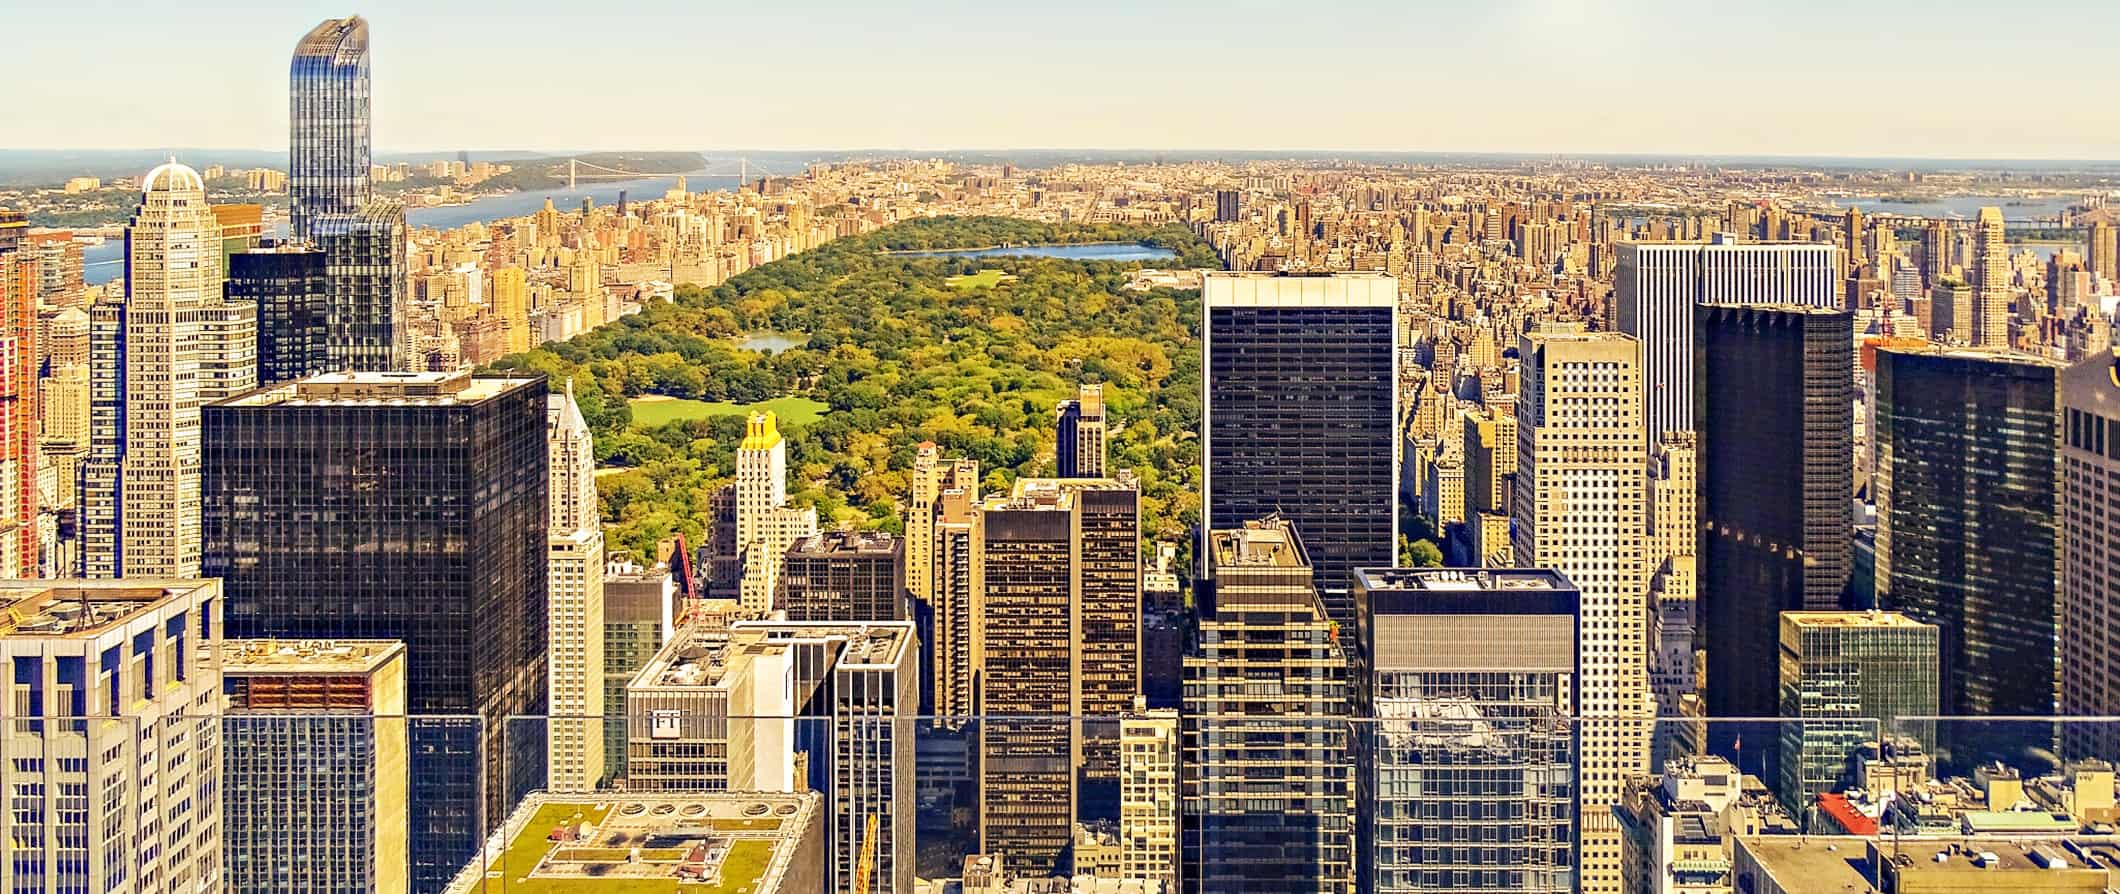 New York City Travel Guide: What to See, Do, Costs, & Ways to Save